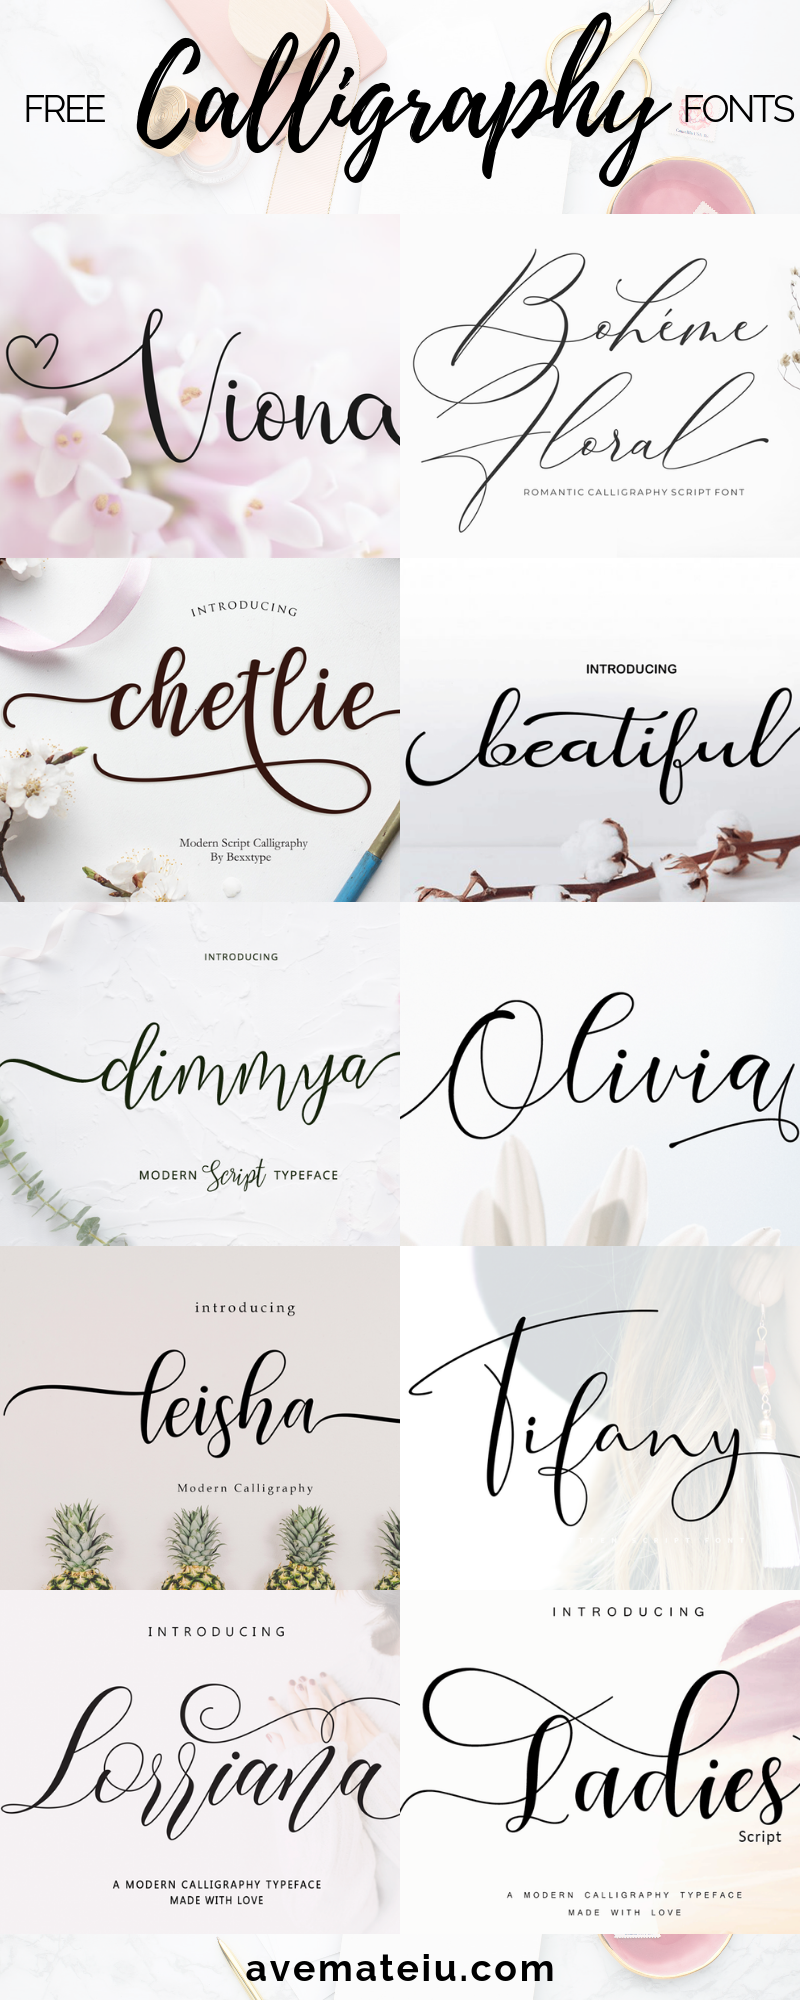 10 New Free Calligraphy Fonts Art Fonts And Calligraphy Typography Handwritten Fonts Alphab Tattoo Fonts Cursive Free Calligraphy Fonts Fancy Script Font